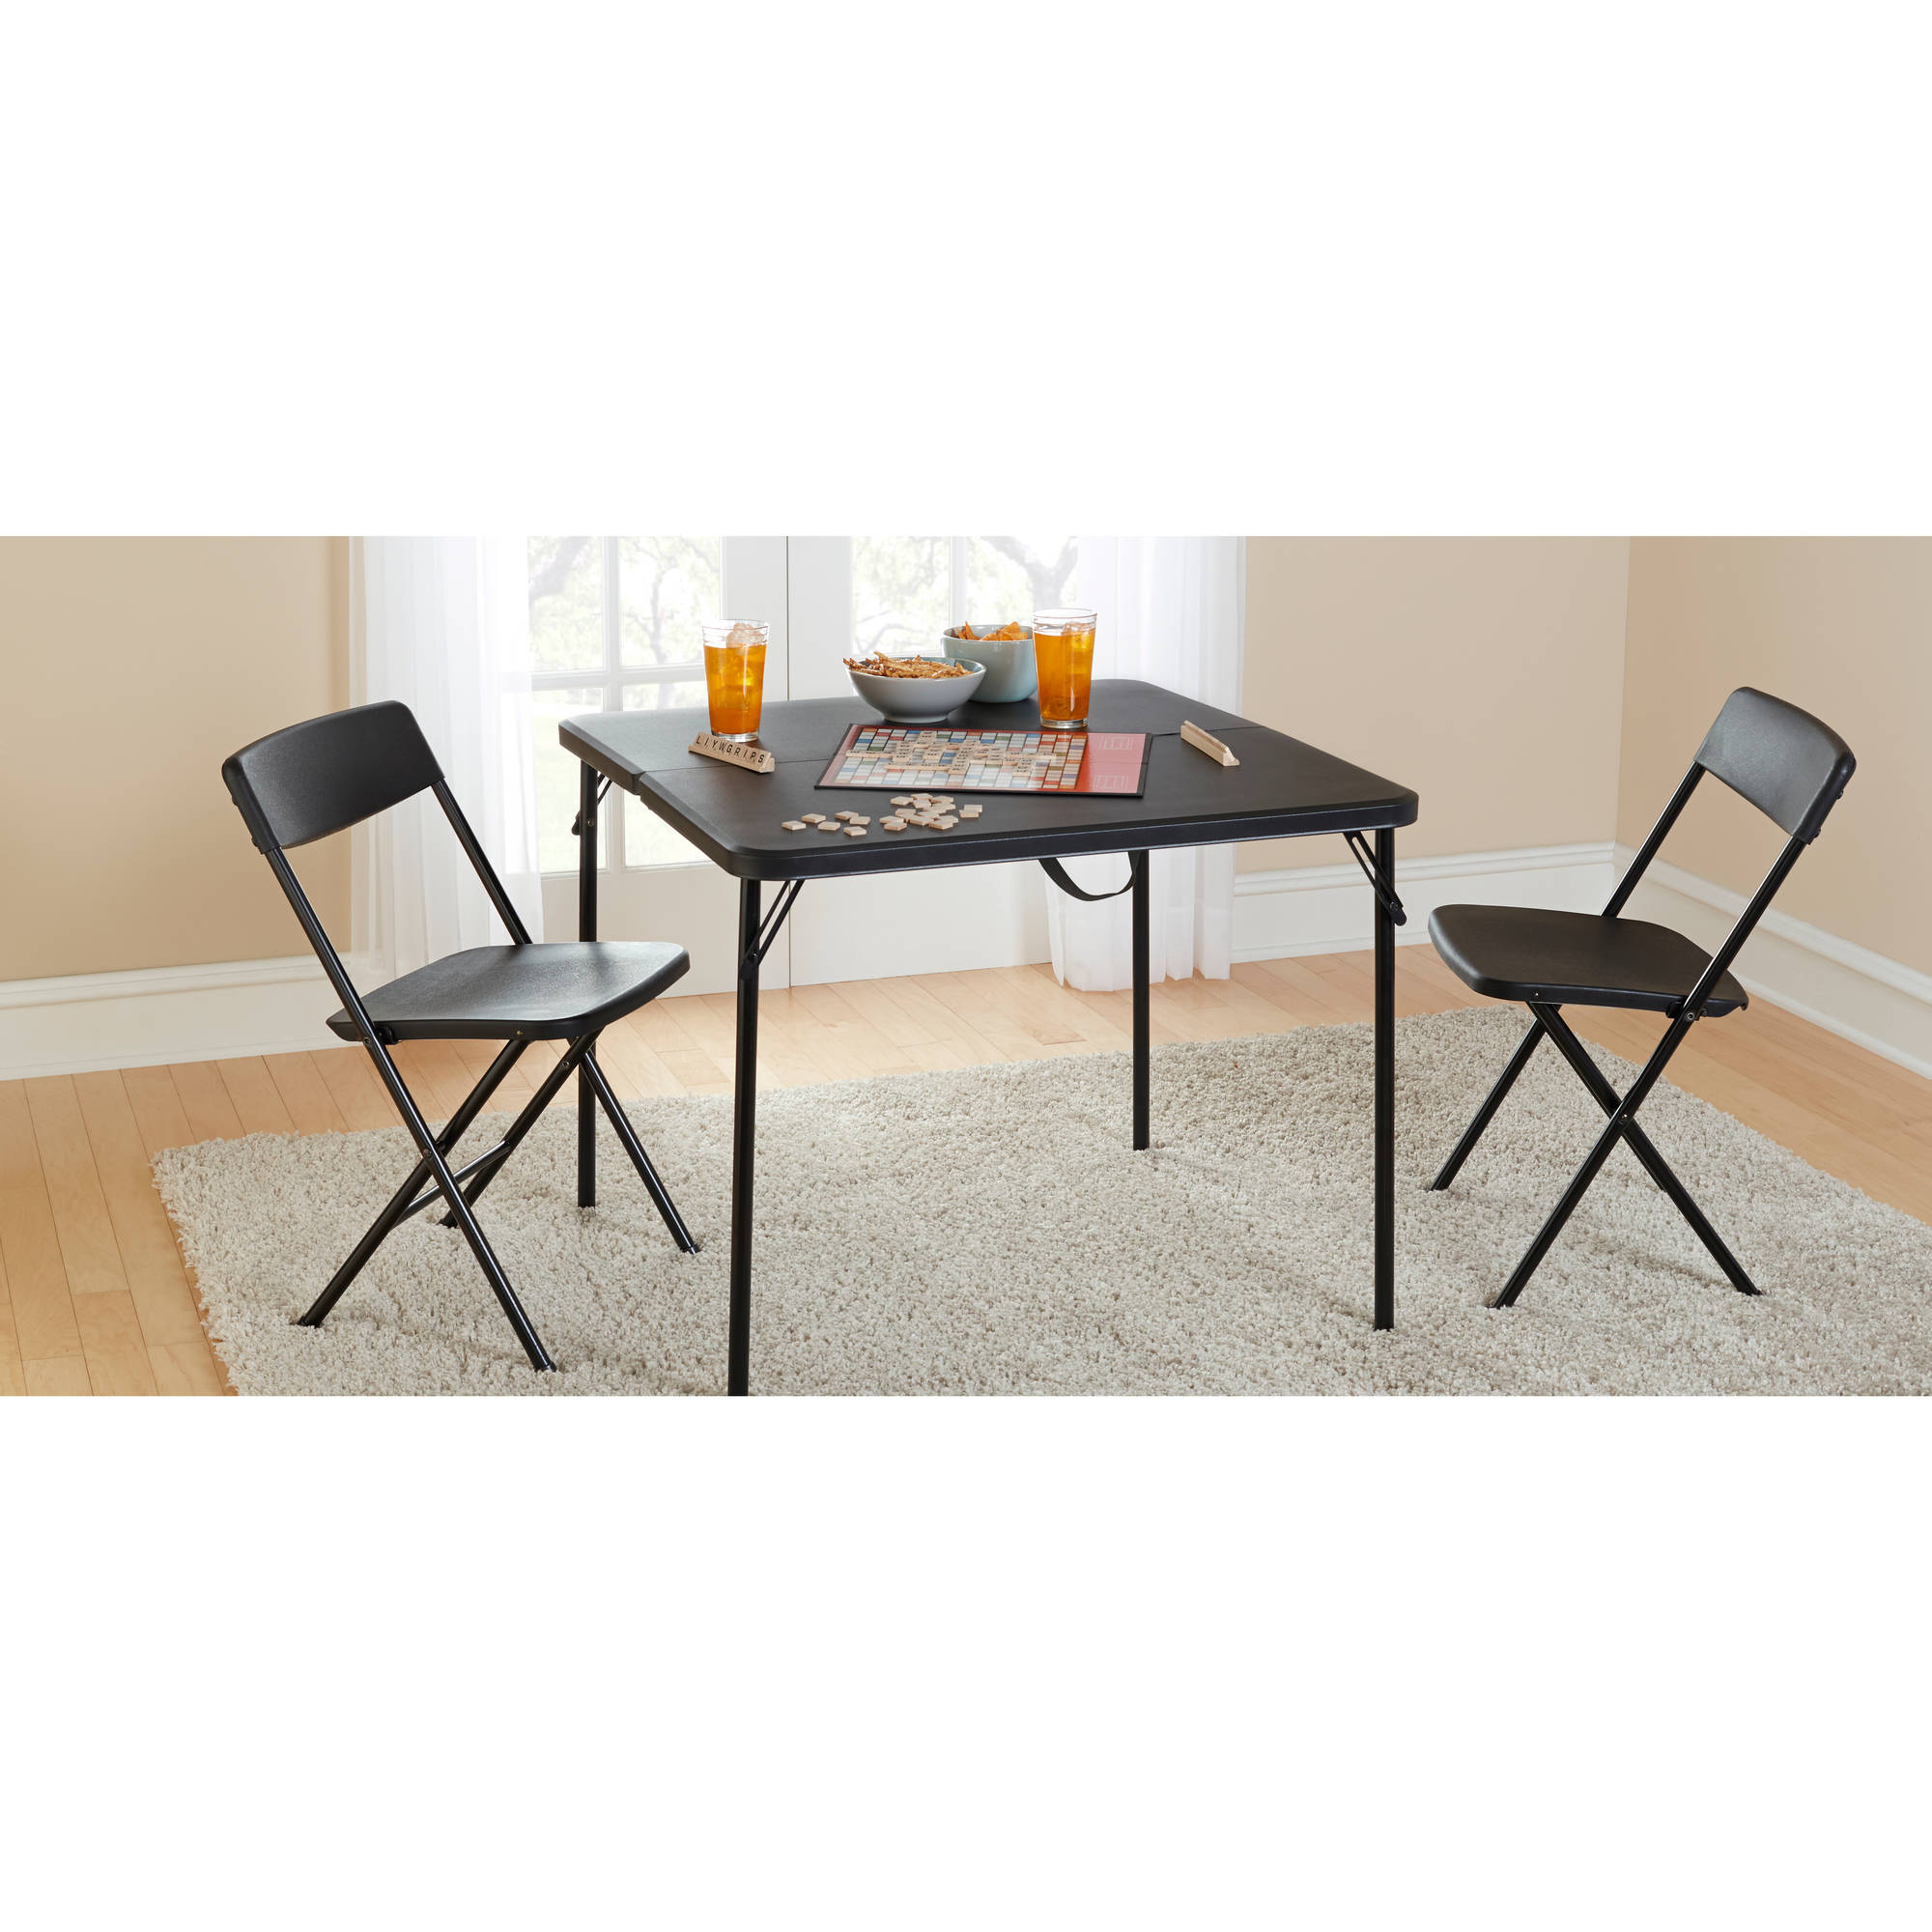 Mainstays 48 faux wood folding table walnut walmart com